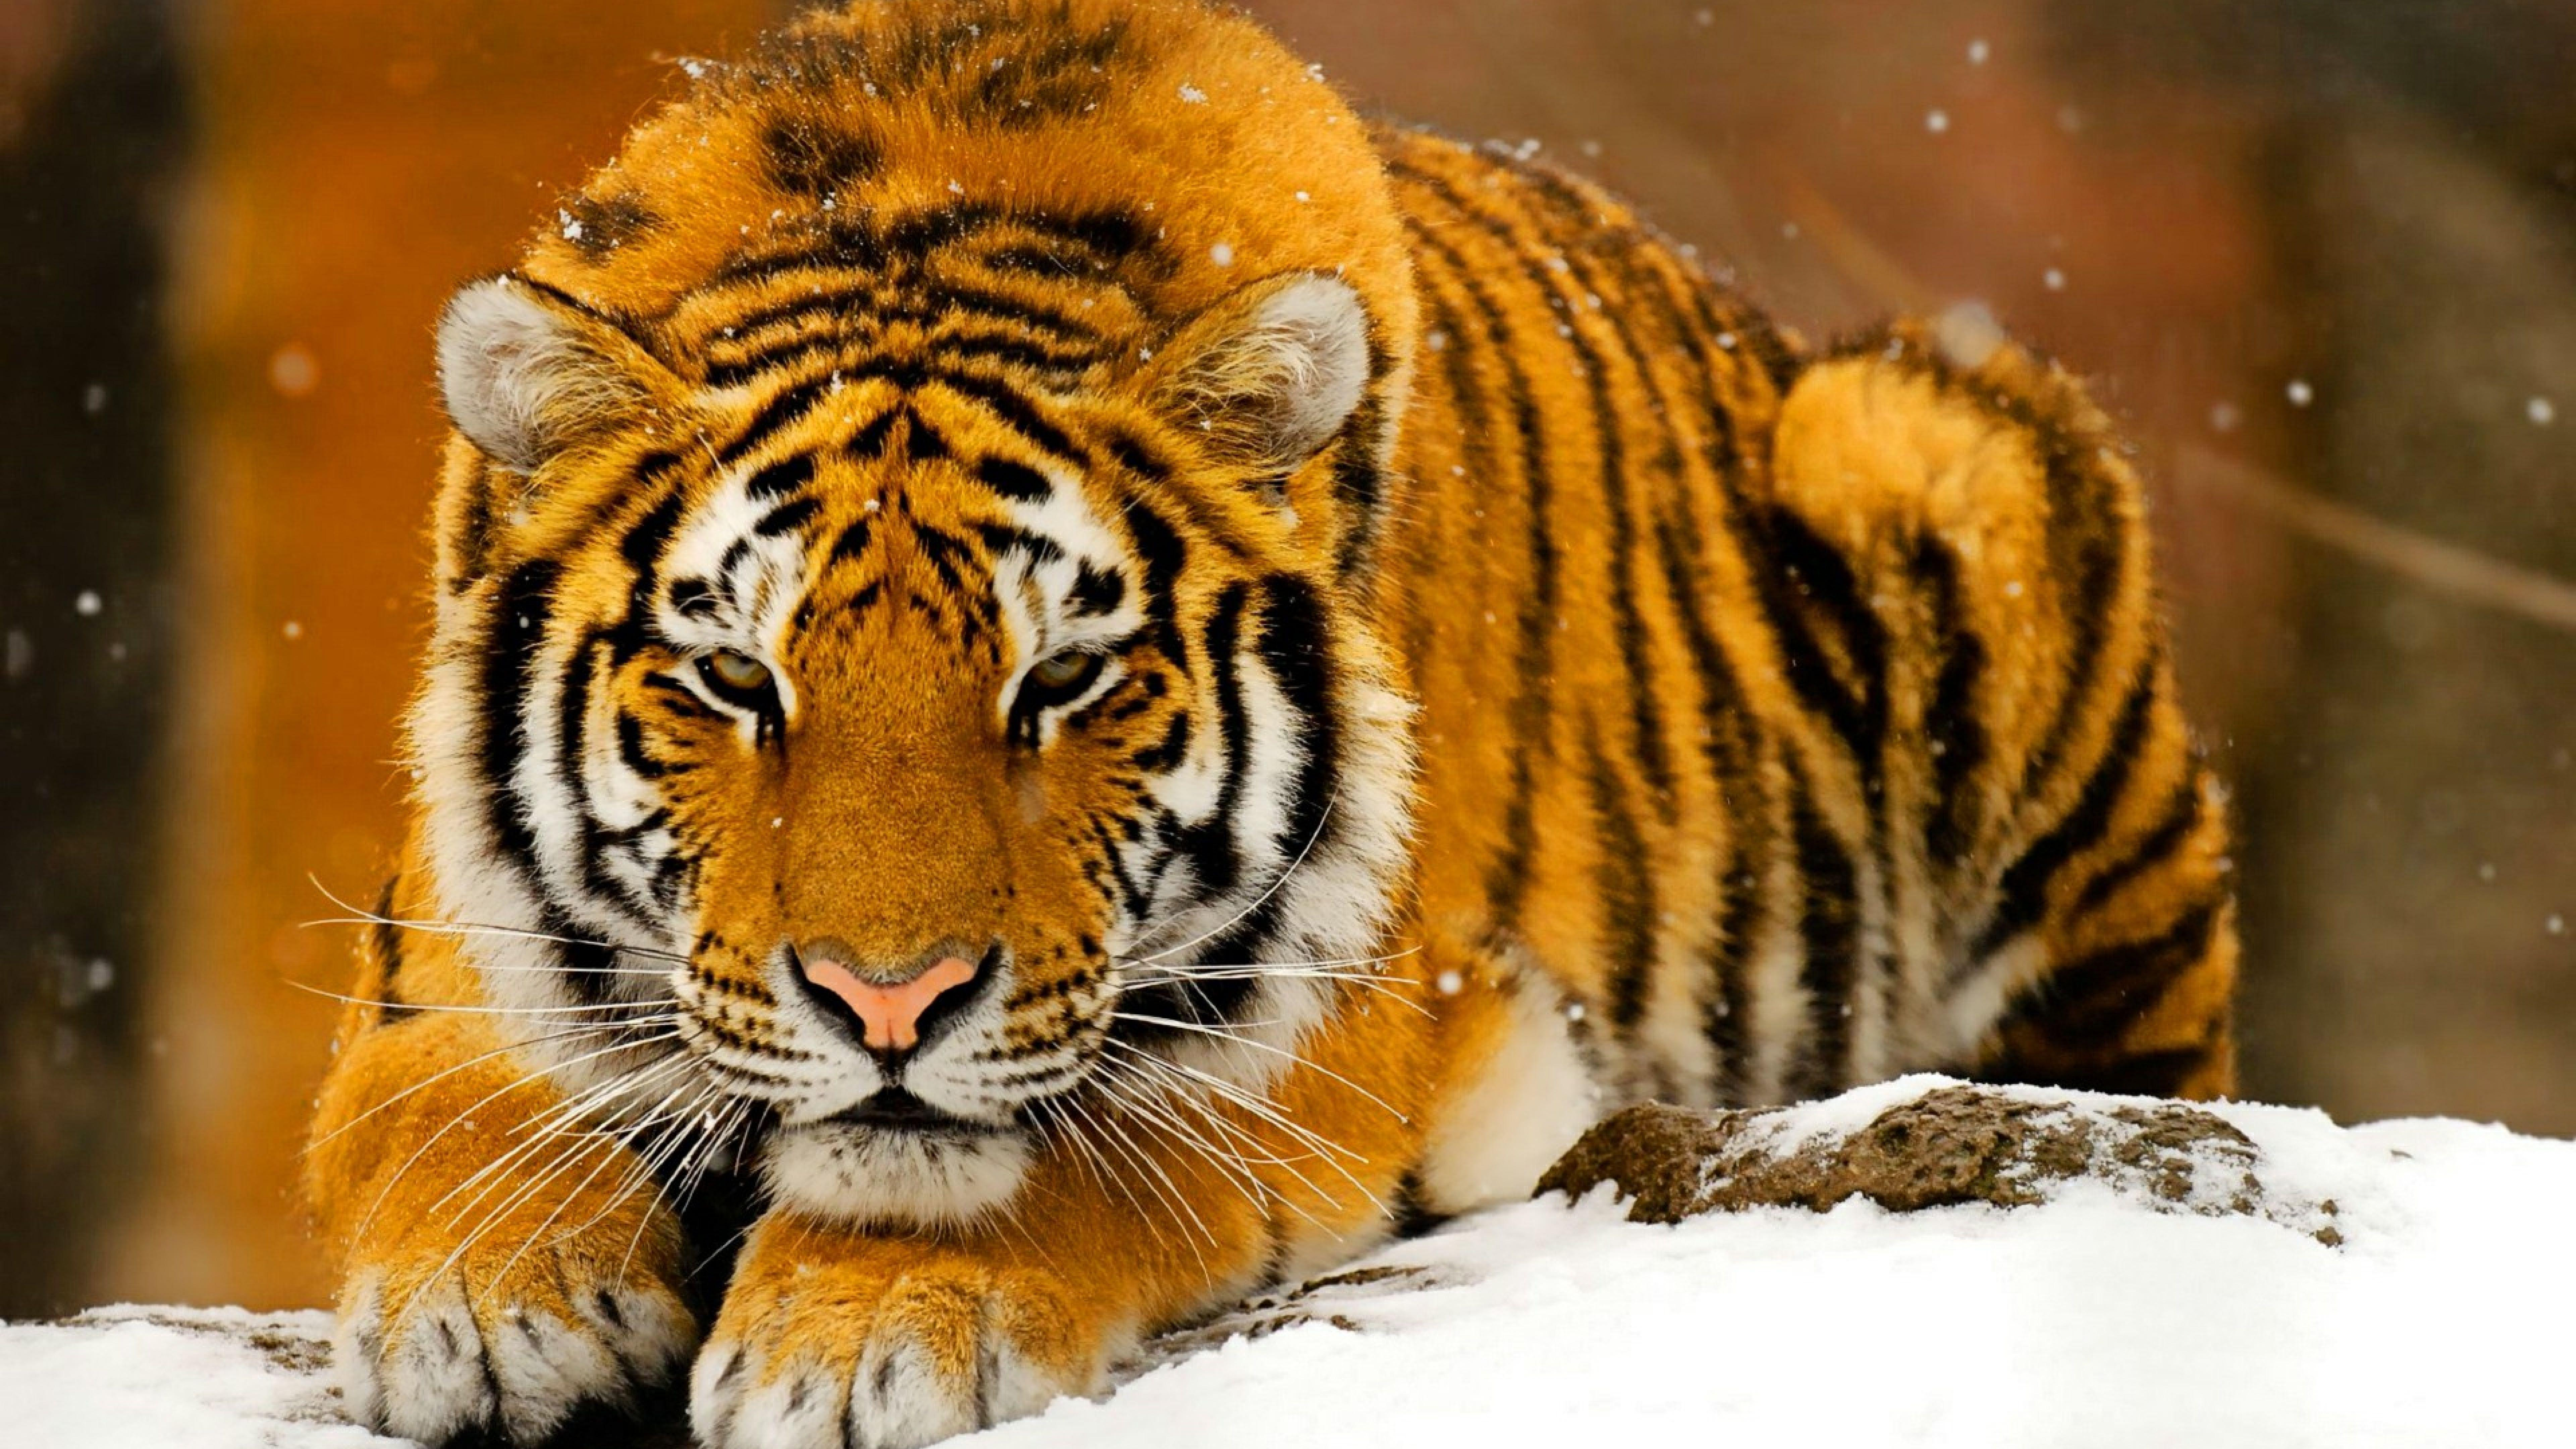 Free Hd Tiger Animal Wallpapers Download